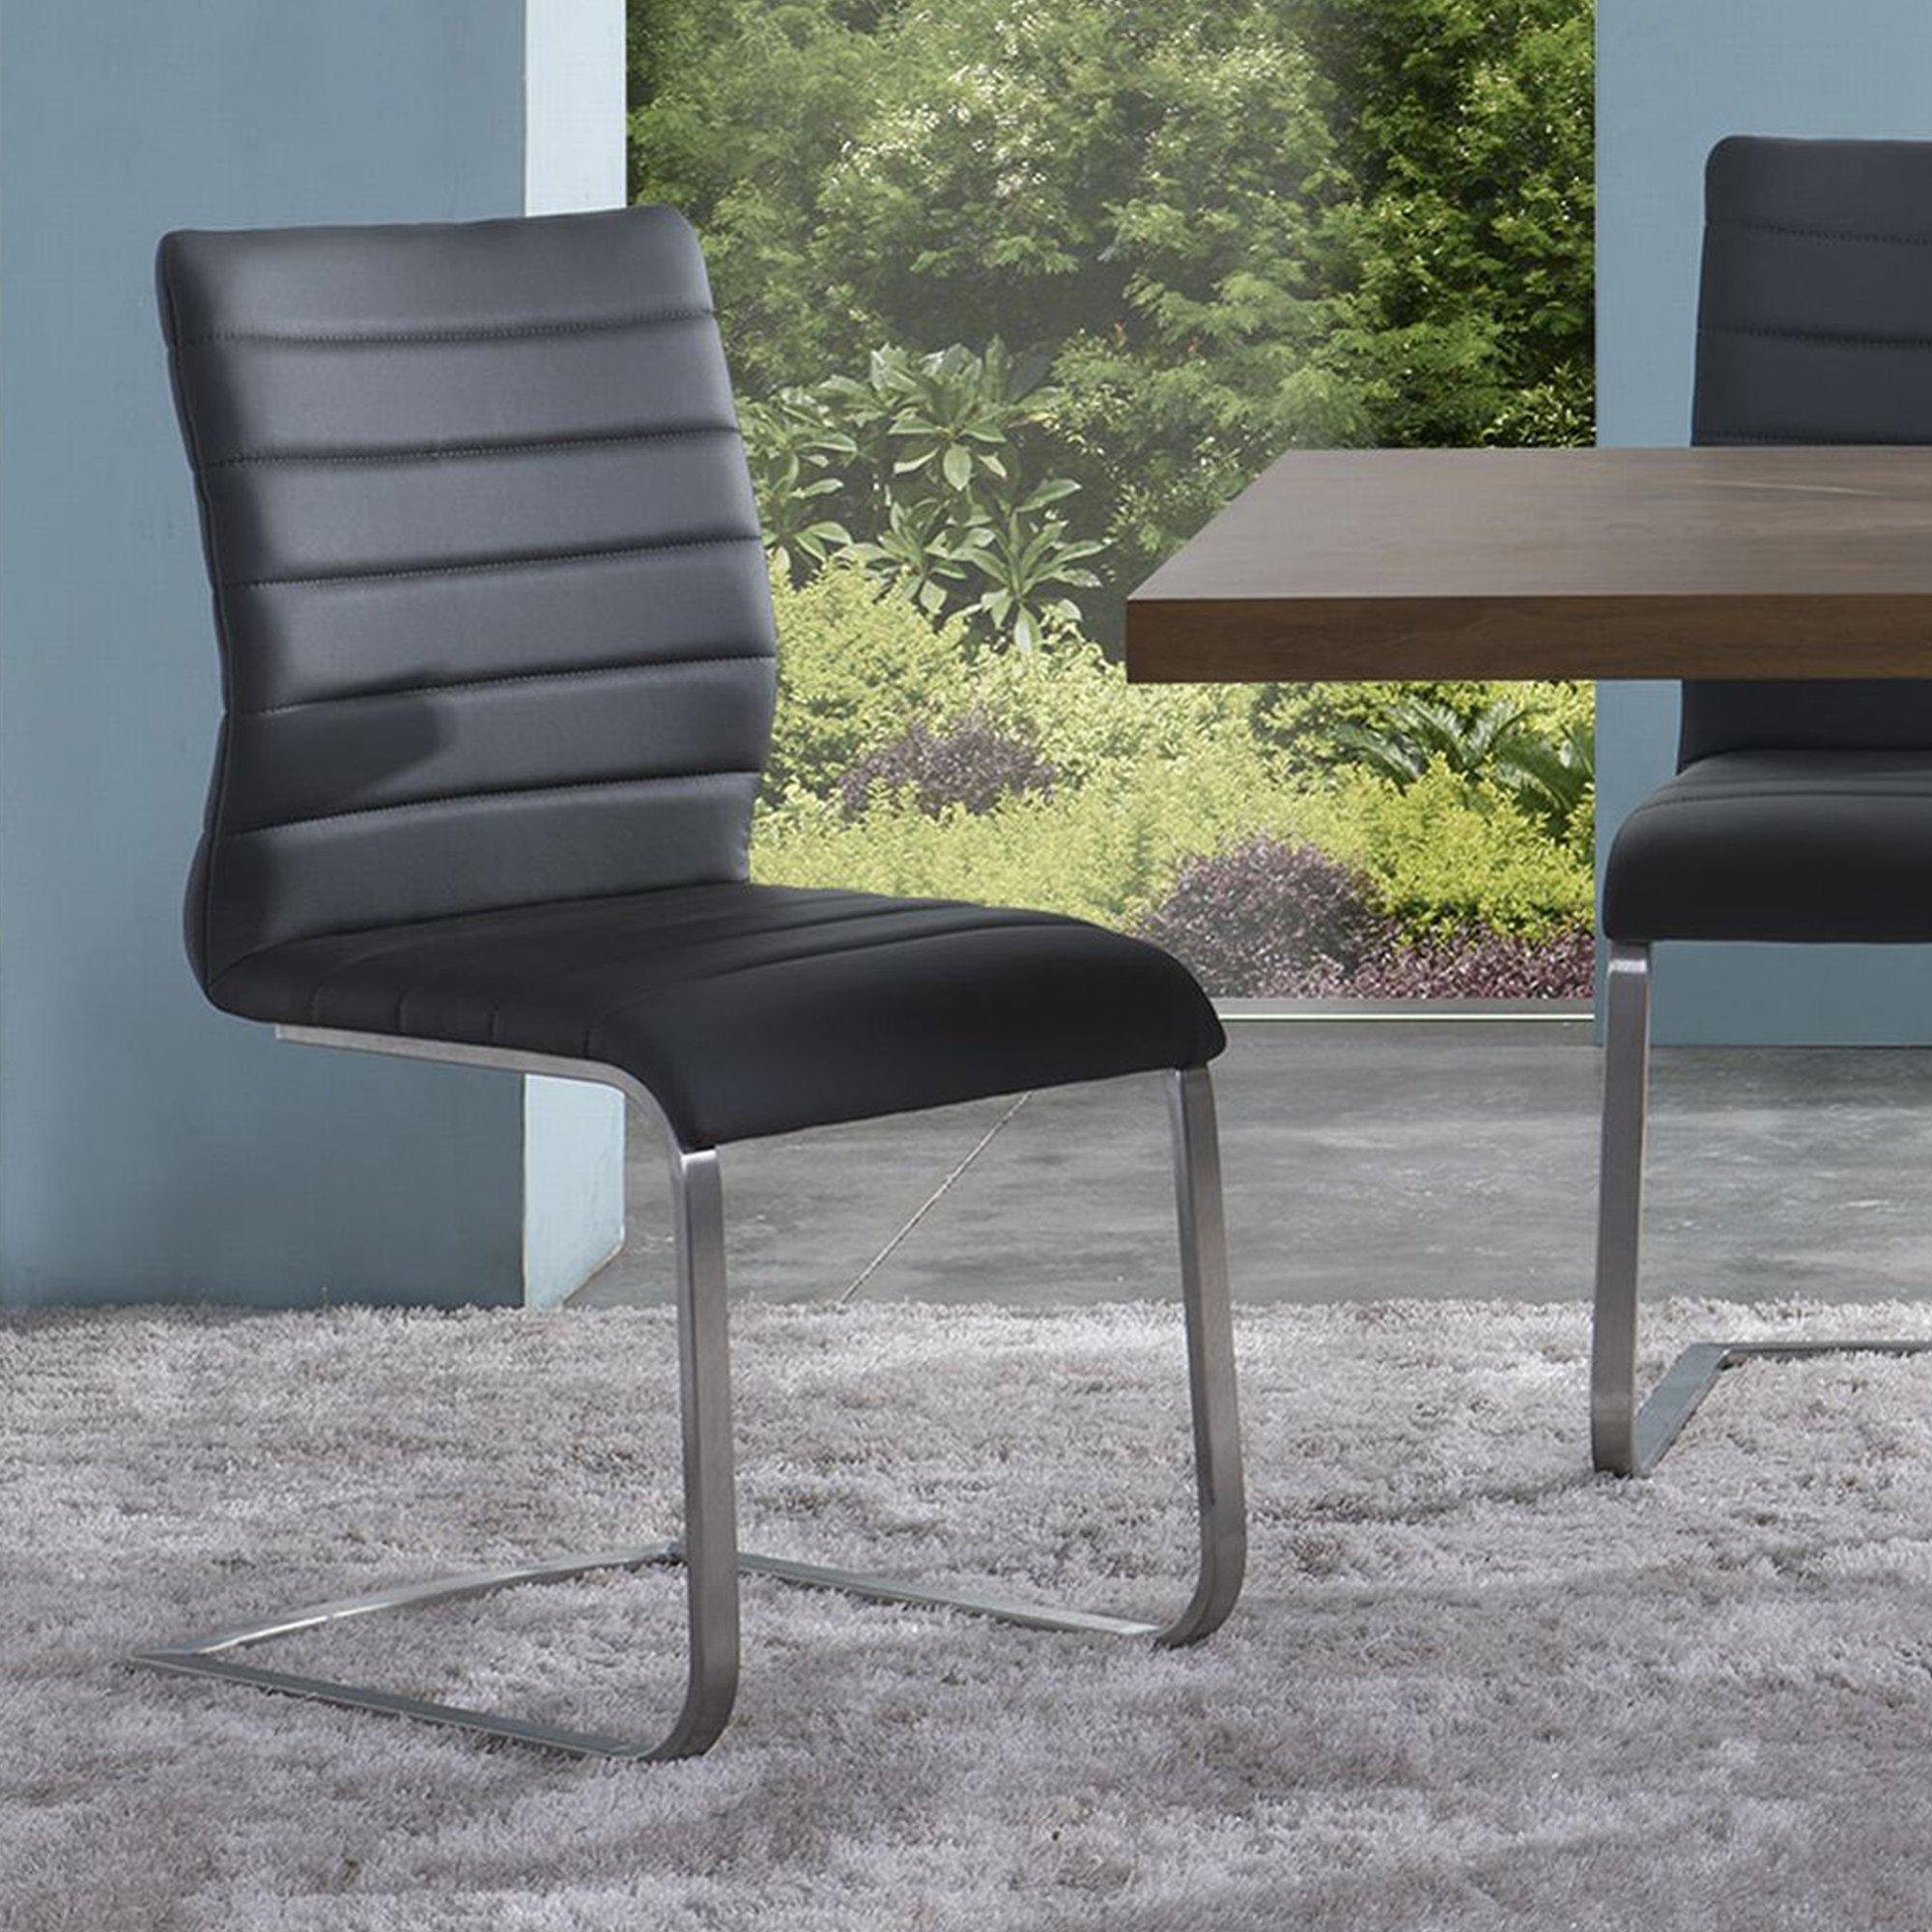 "Armen Living Fusion Stainless Steel Contemporary Side Chair (Set of 2), Gray upholstered, 37"" x 18"" x 22"""